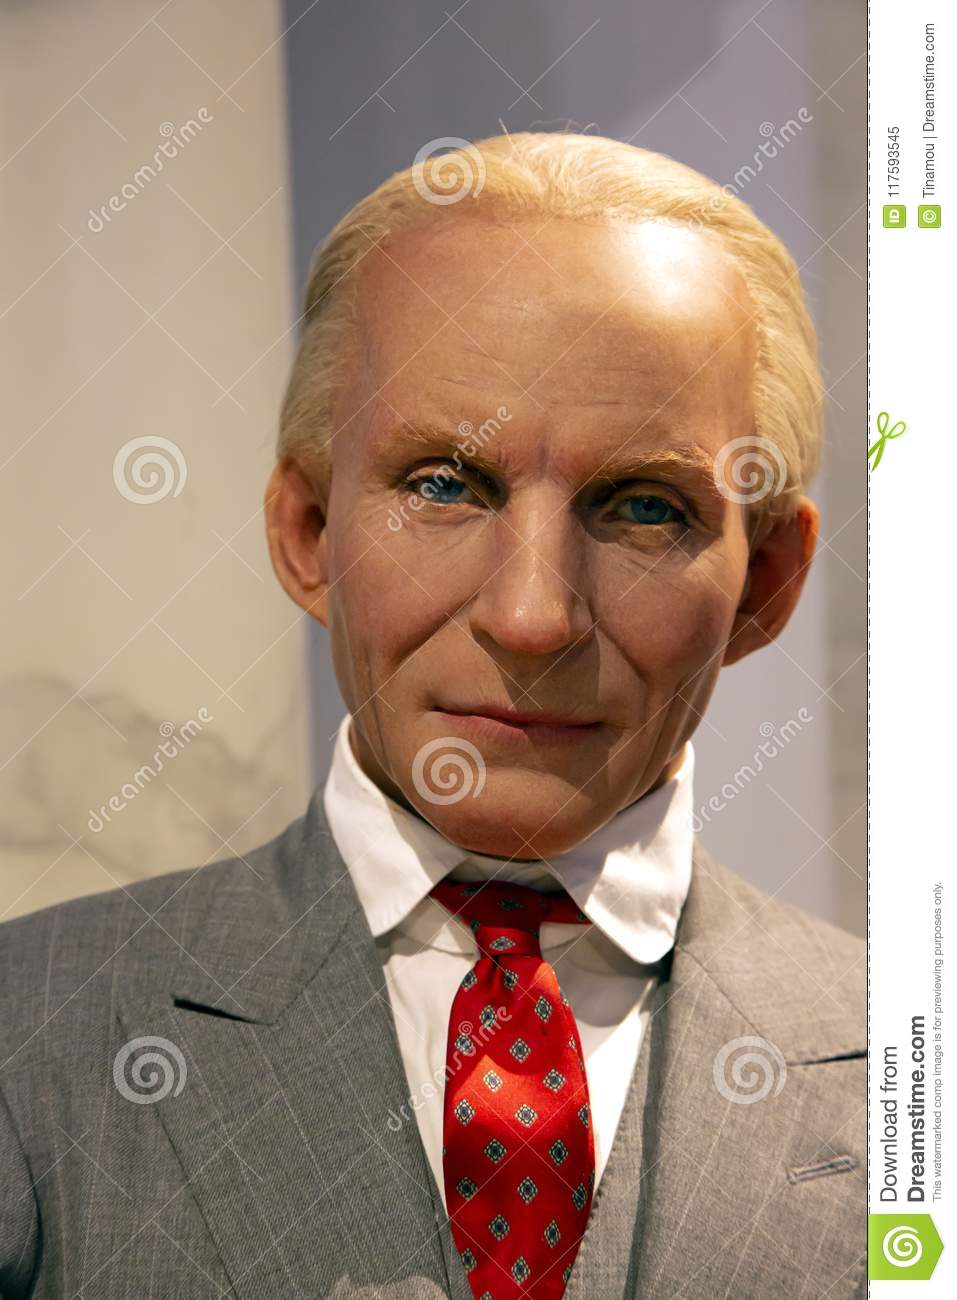 Henry Ford in Madame Tussauds of New York